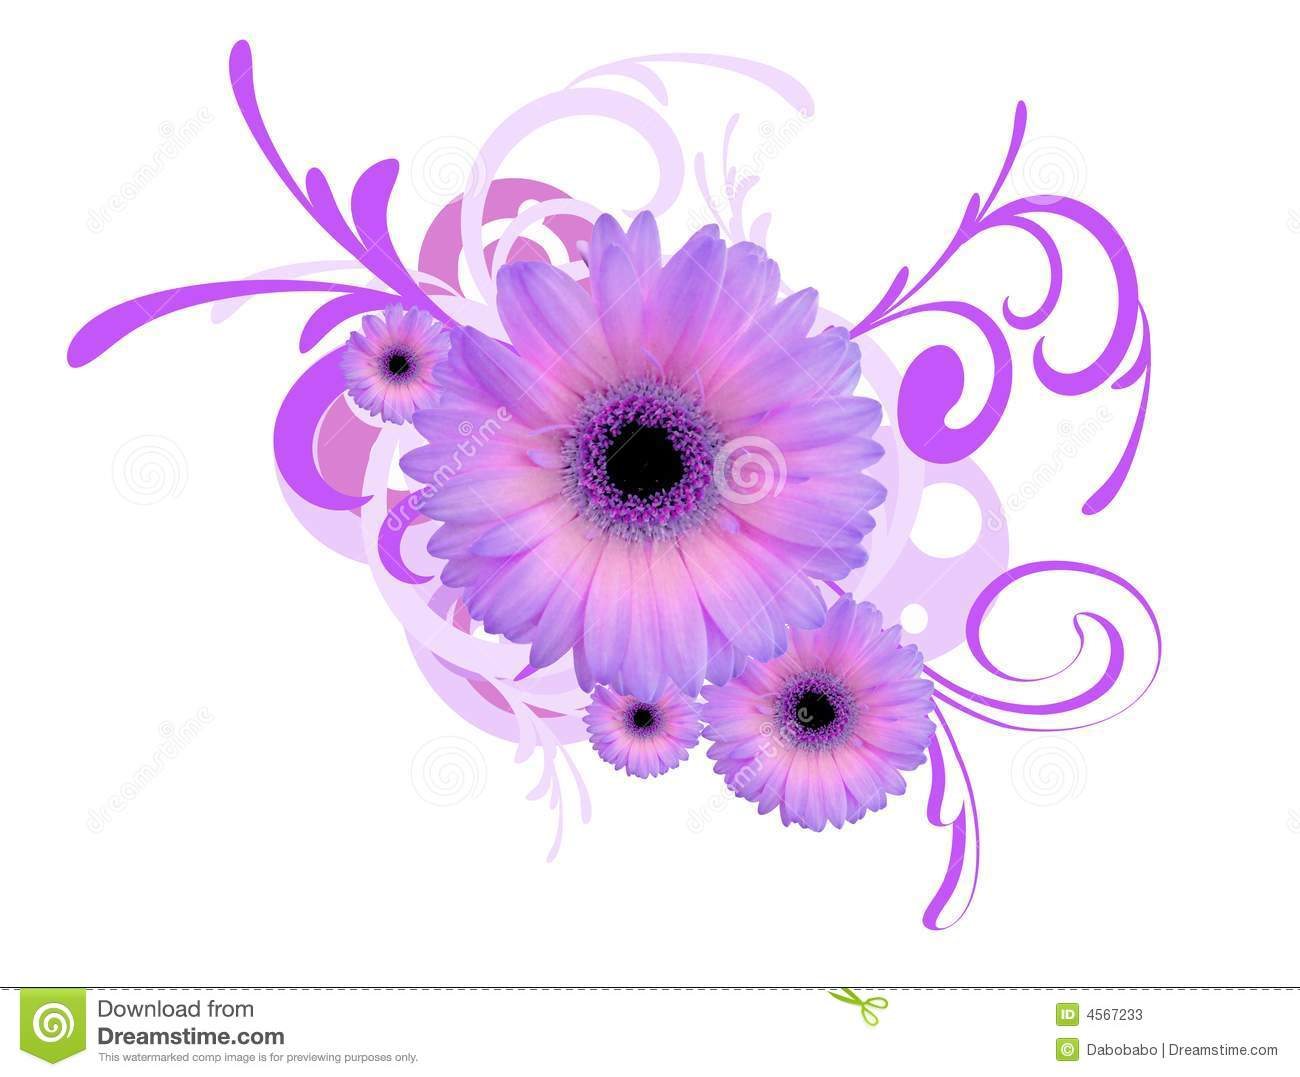 gerbera daisy background stock illustration illustration